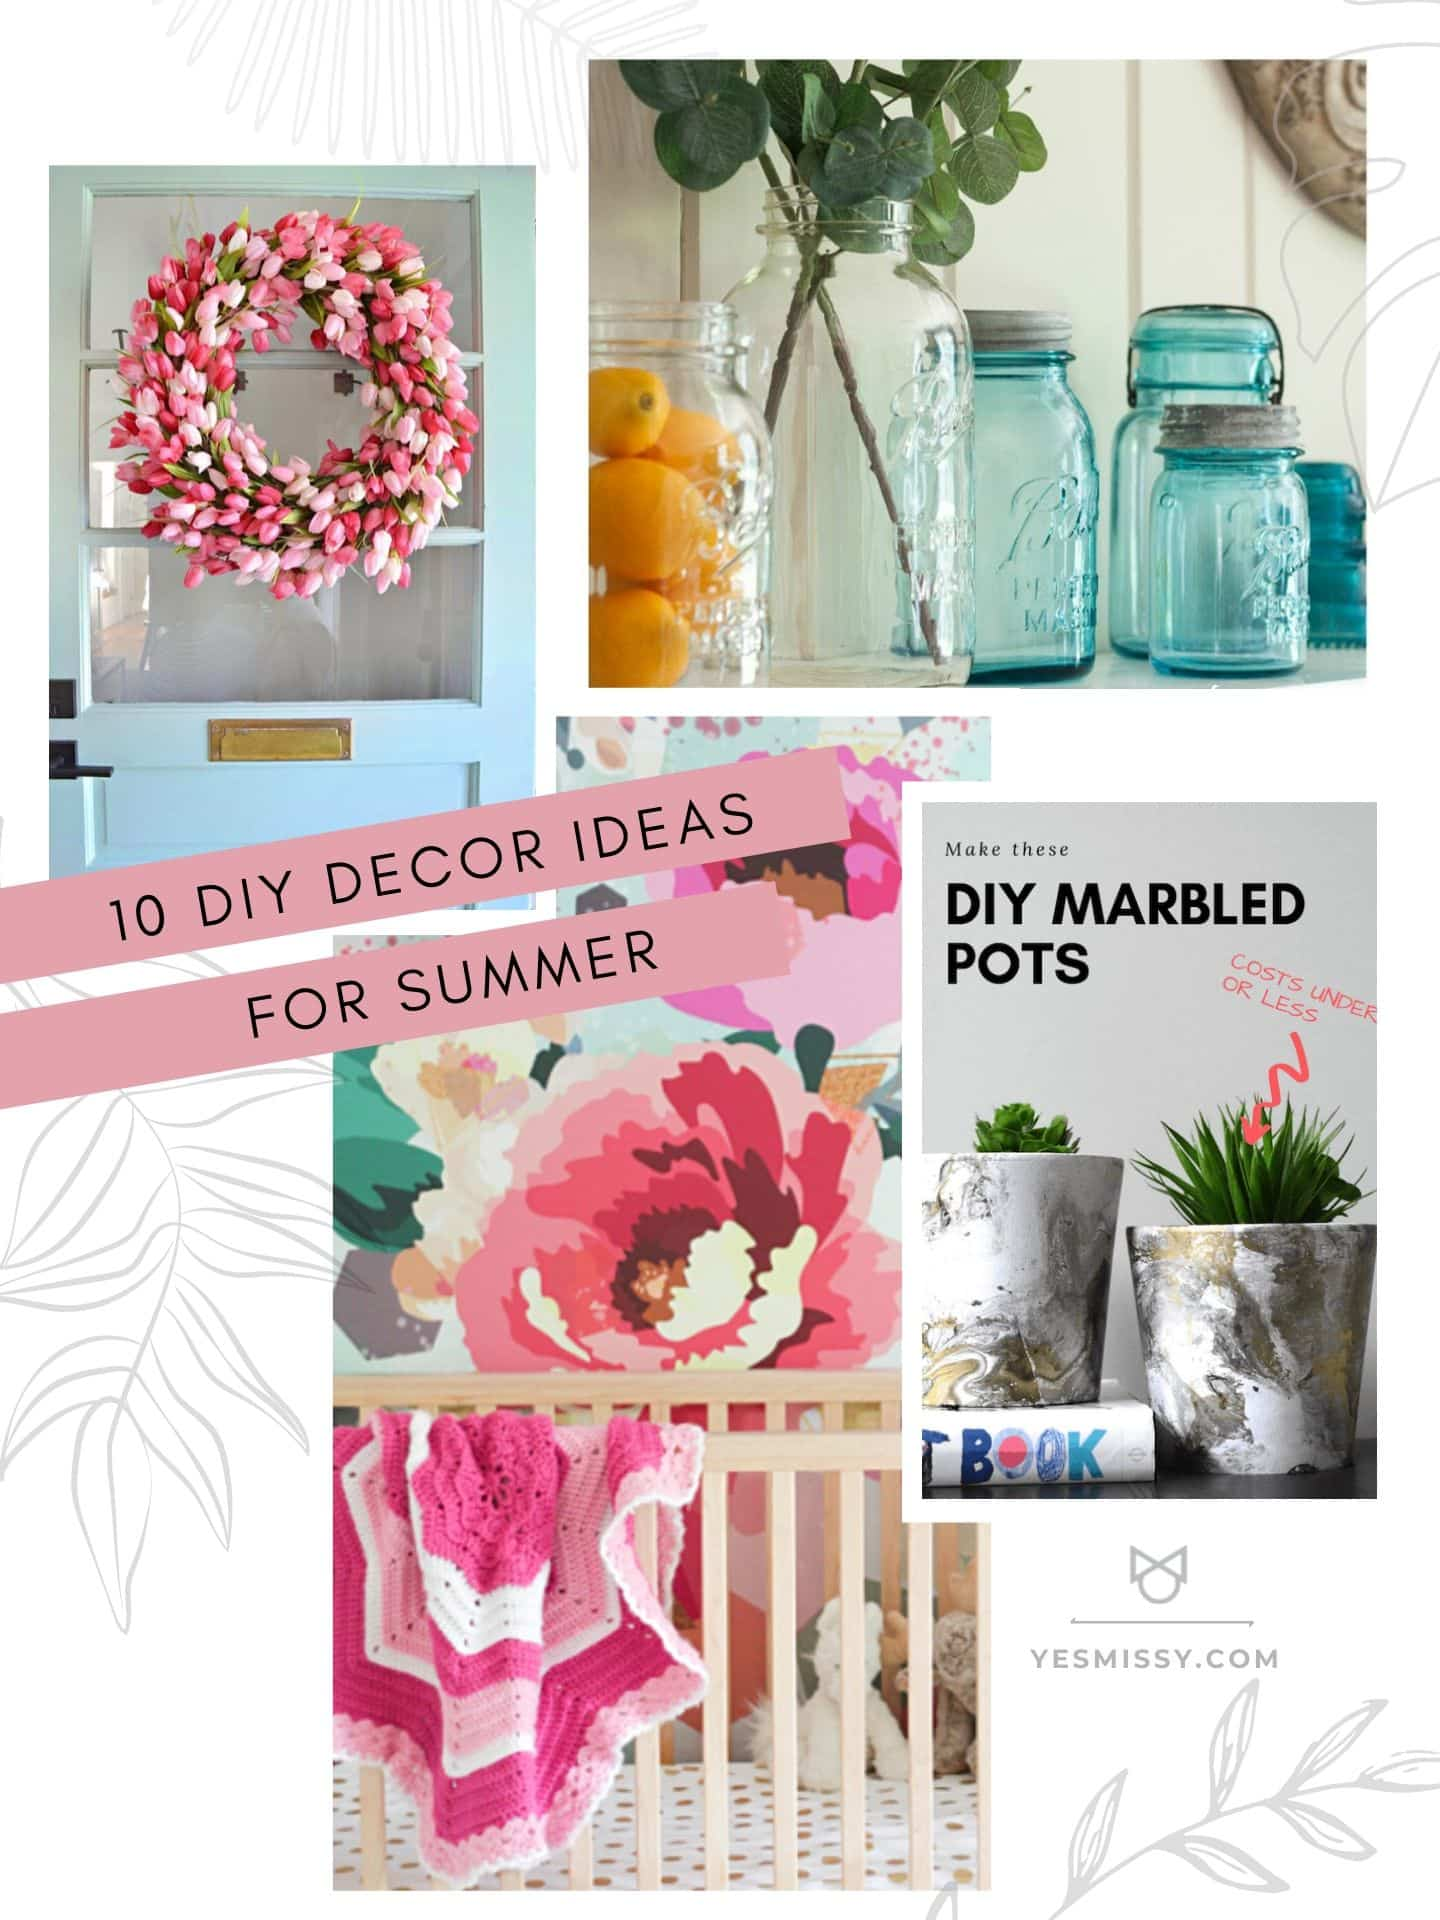 From front porch ideas to living room ideas, here are 10 DIY home decor ideas for summer to update your home.